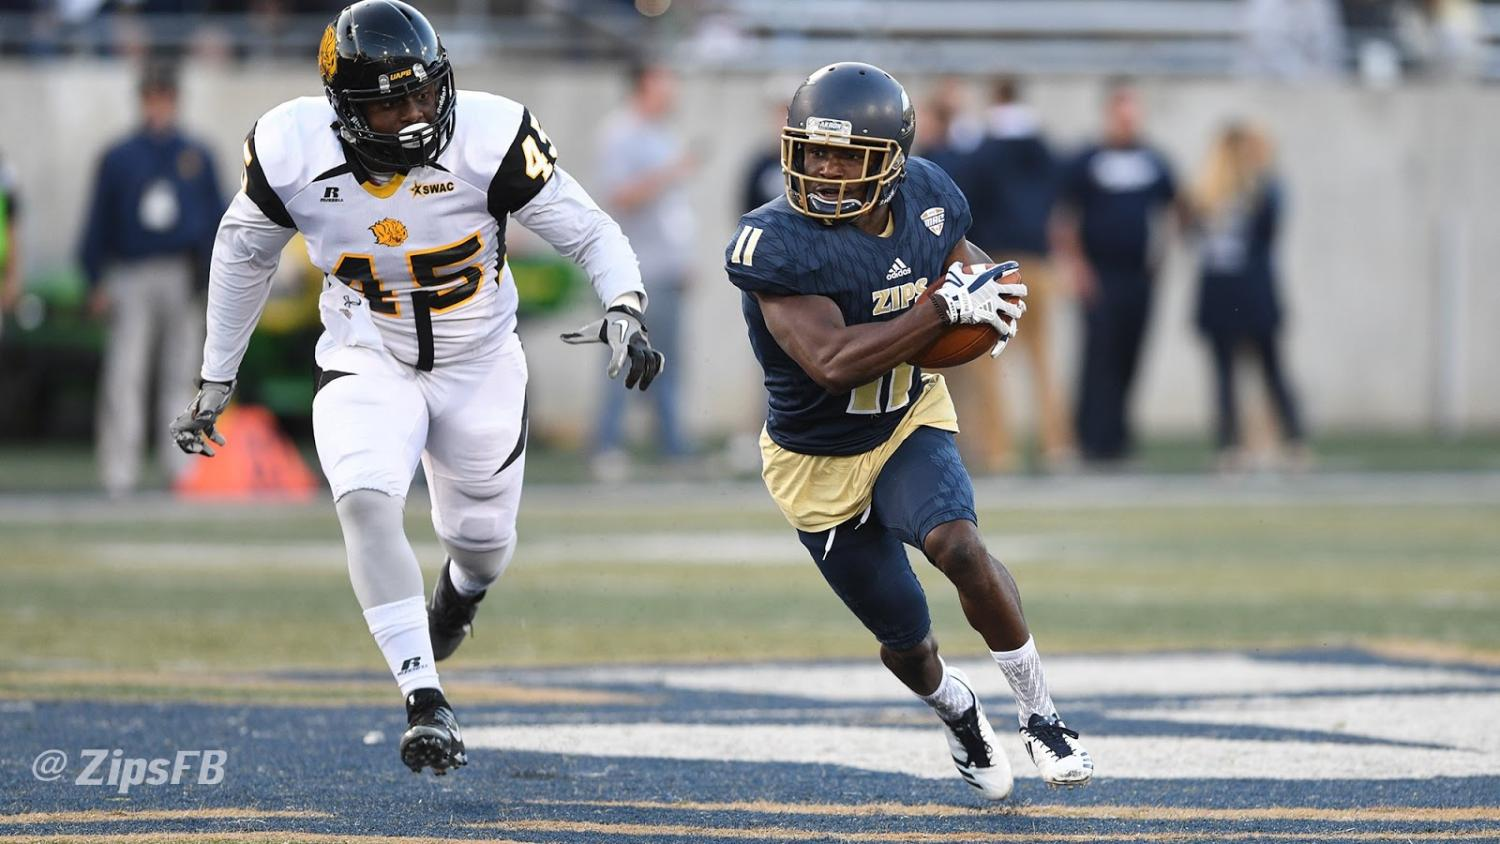 Zips wide receiver A.J. Coney looks for the  end zone. (Photo courtesy of Zips Football)